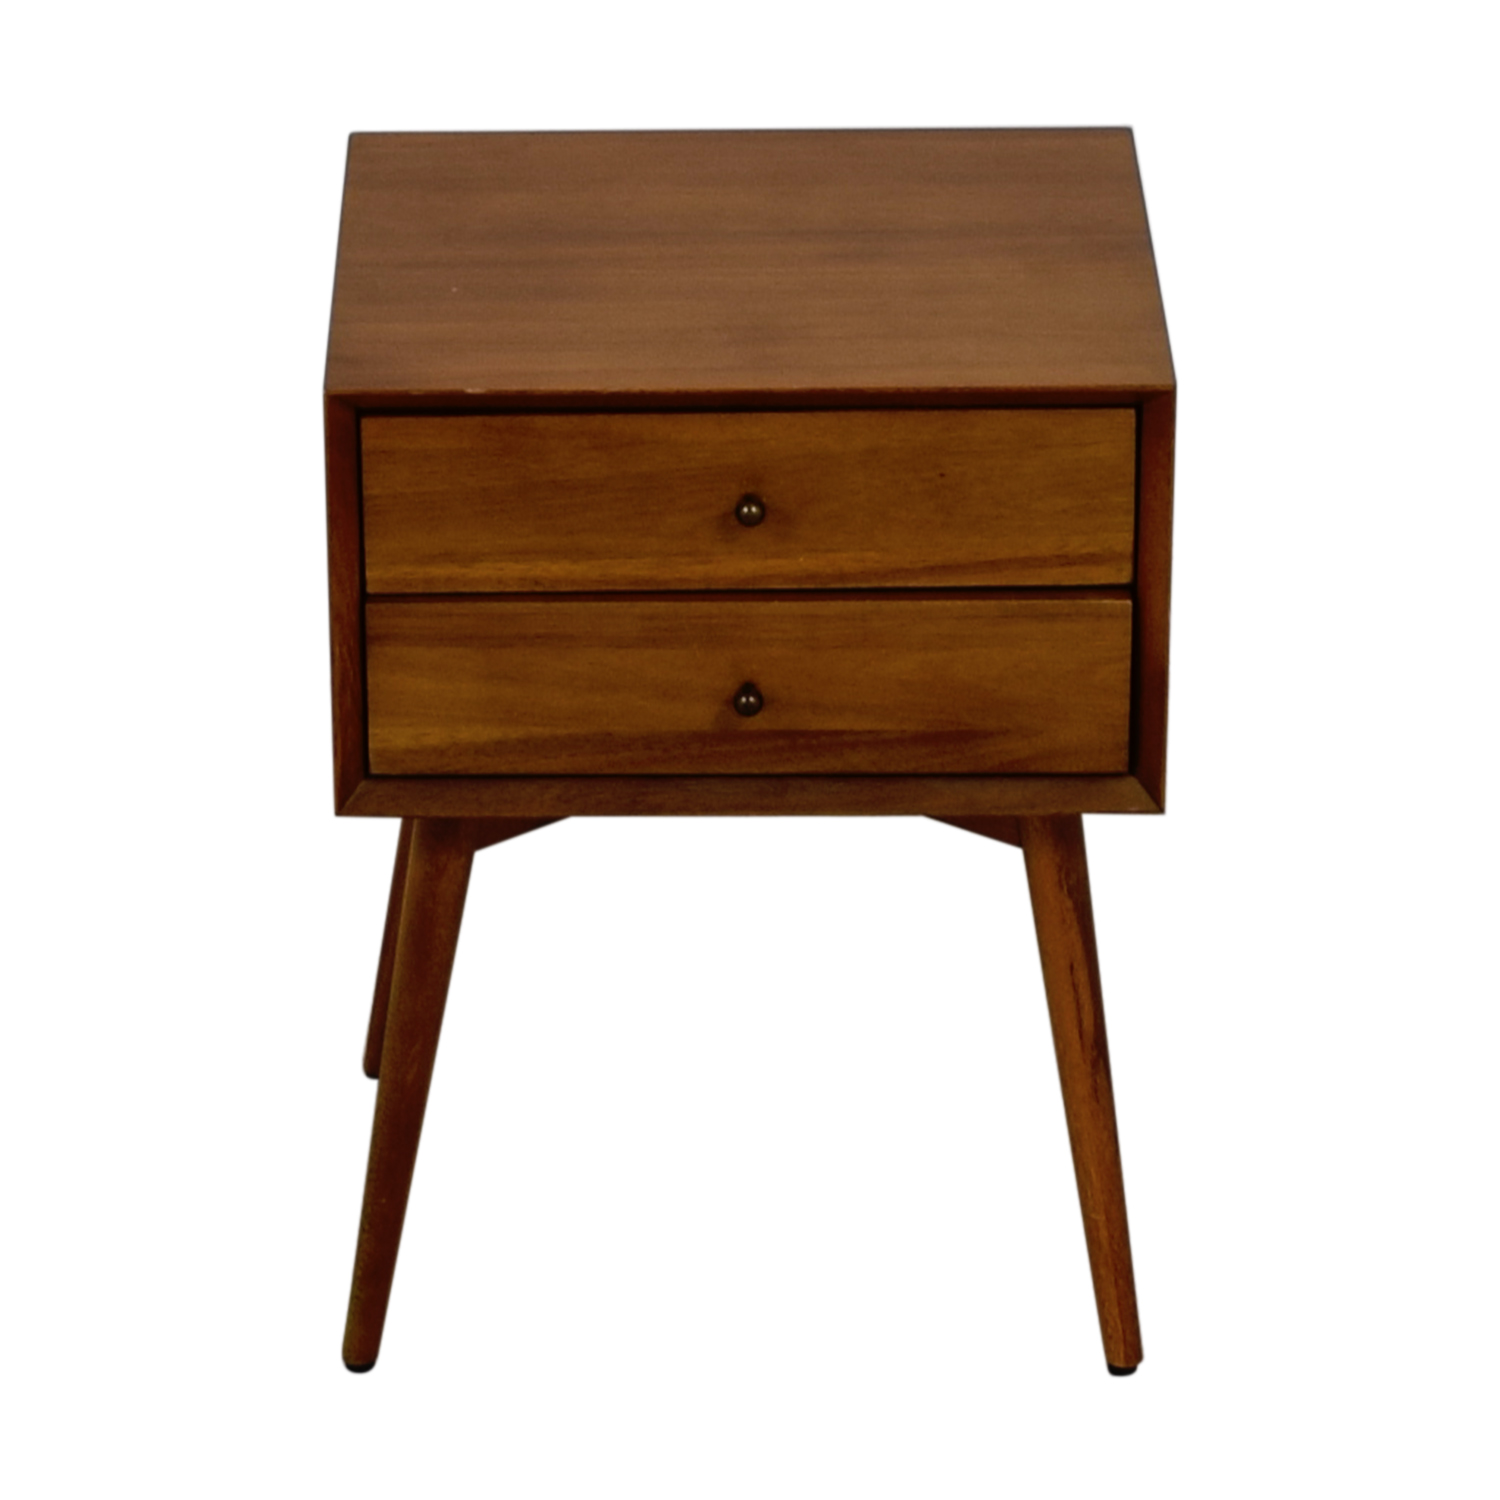 West Elm West Elm Acorn Two-Drawer Nightstand for sale